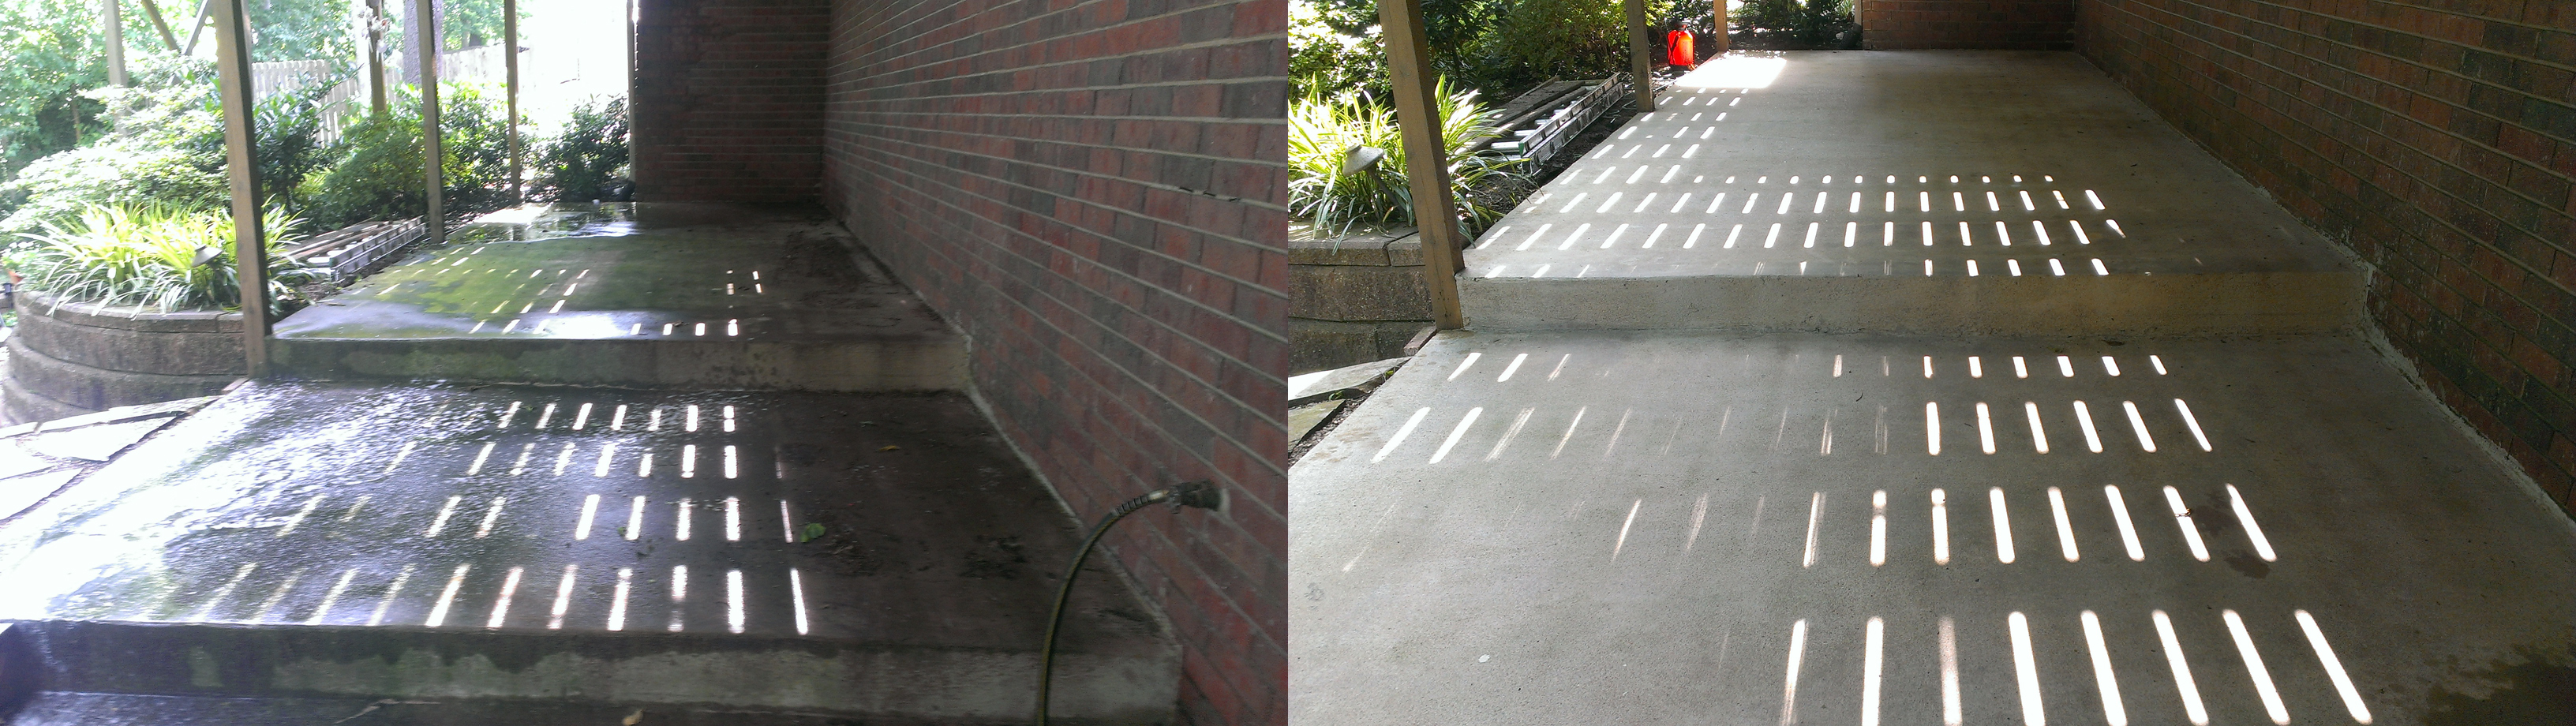 Concrete Cleaning and Protecting